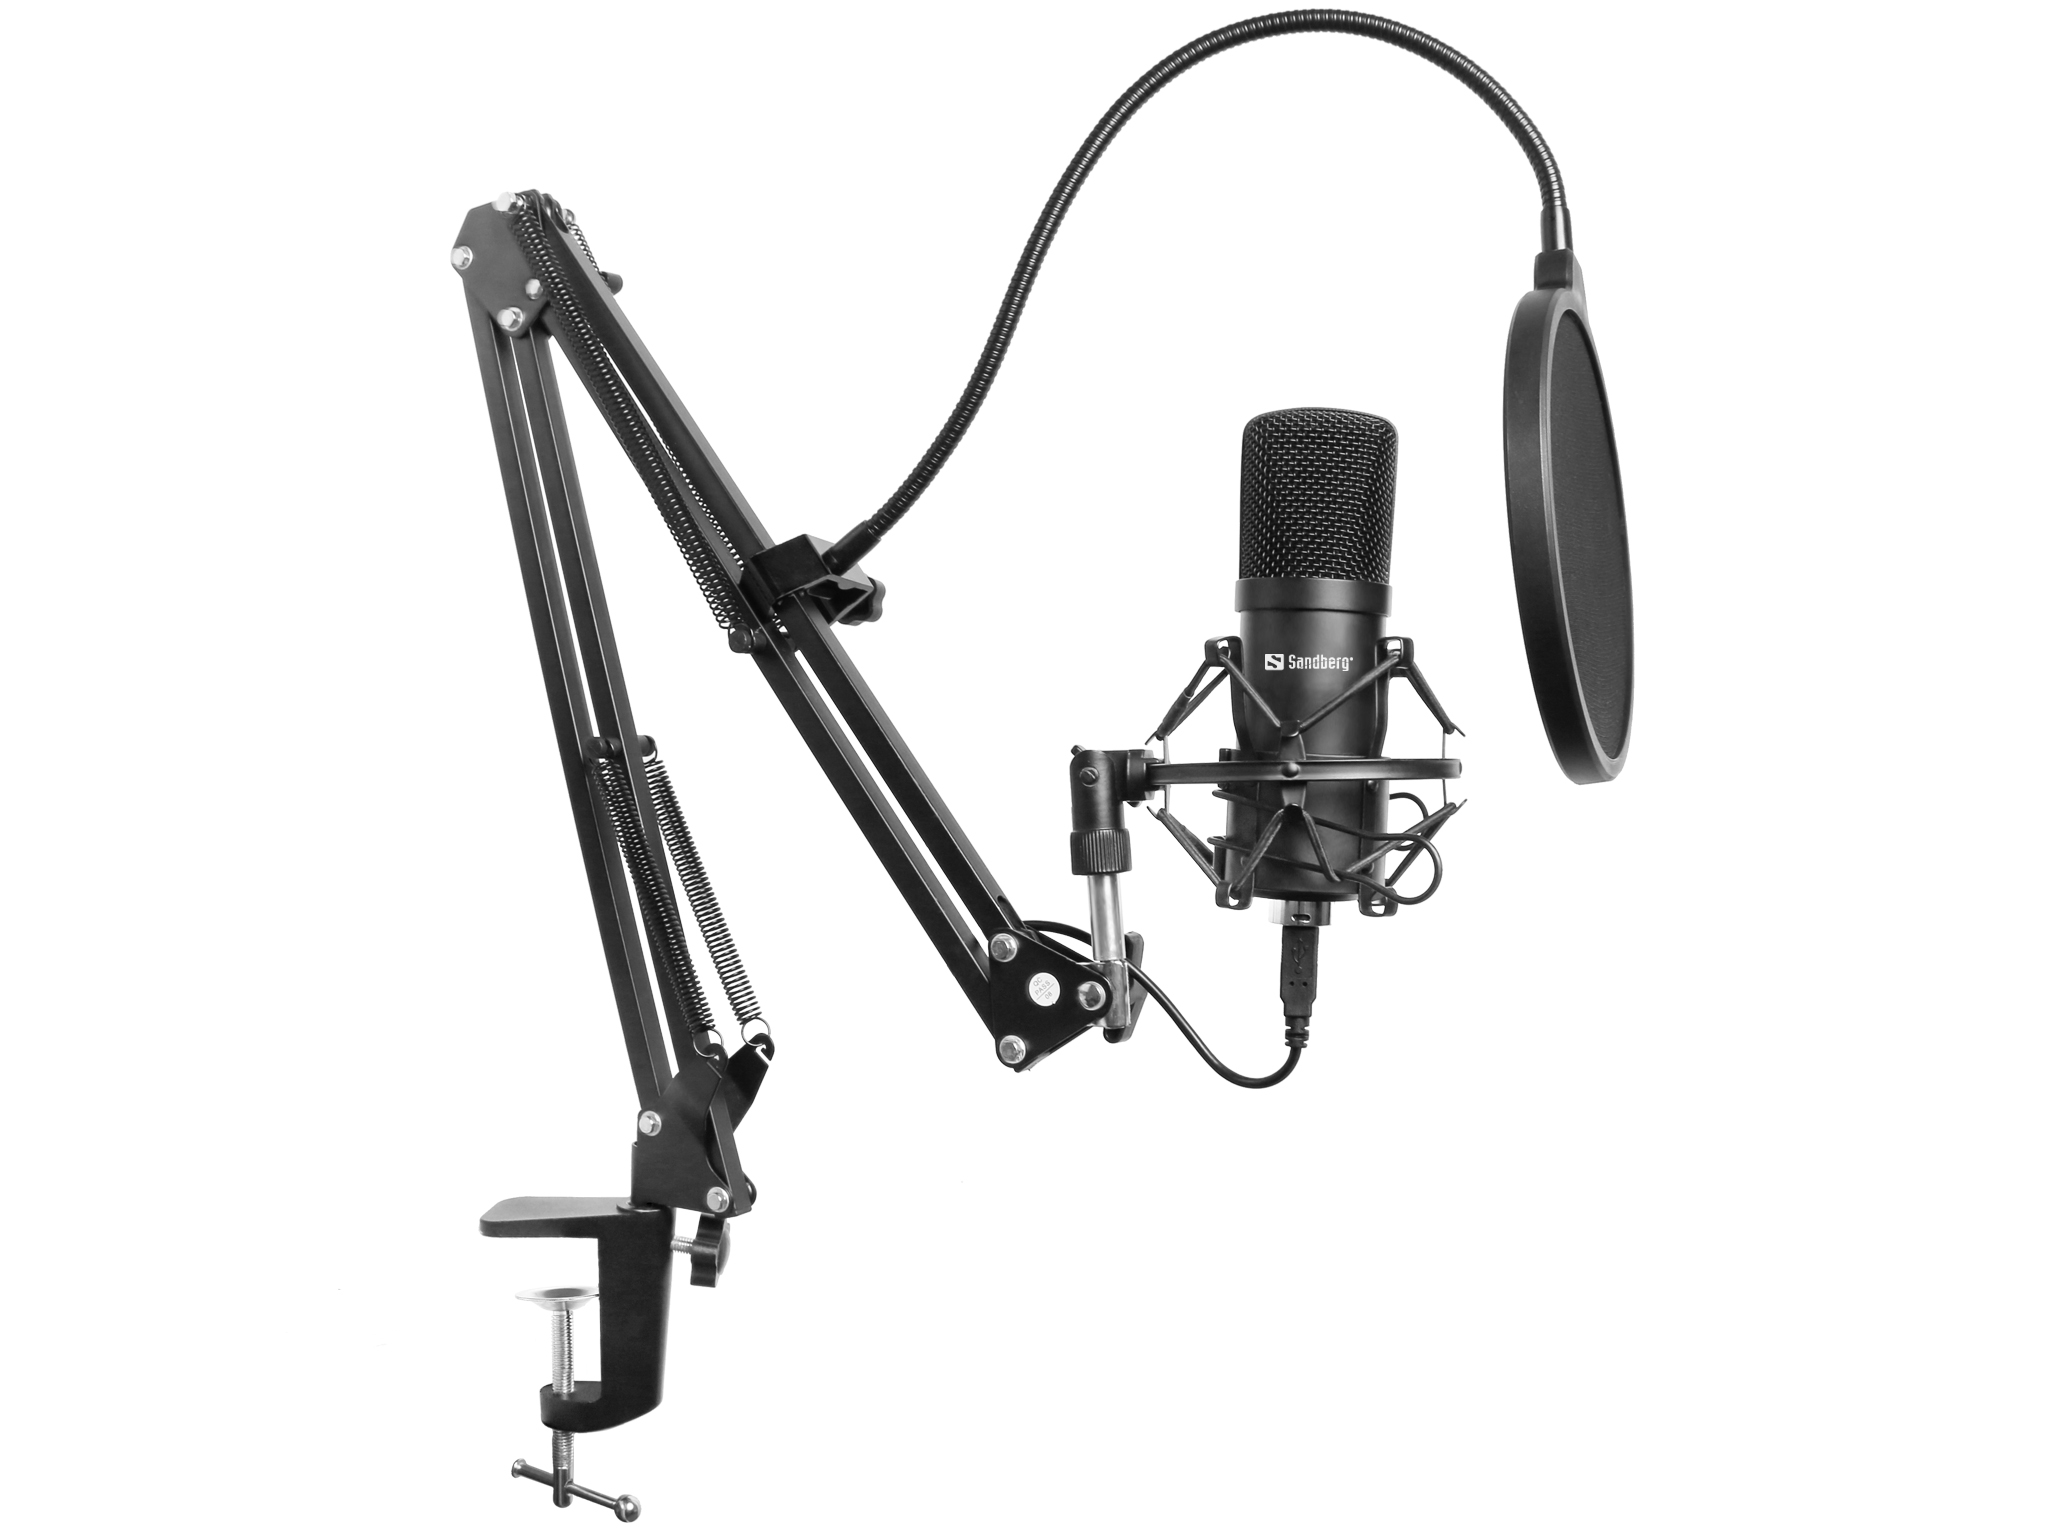 Streamer USB Microphone Kit